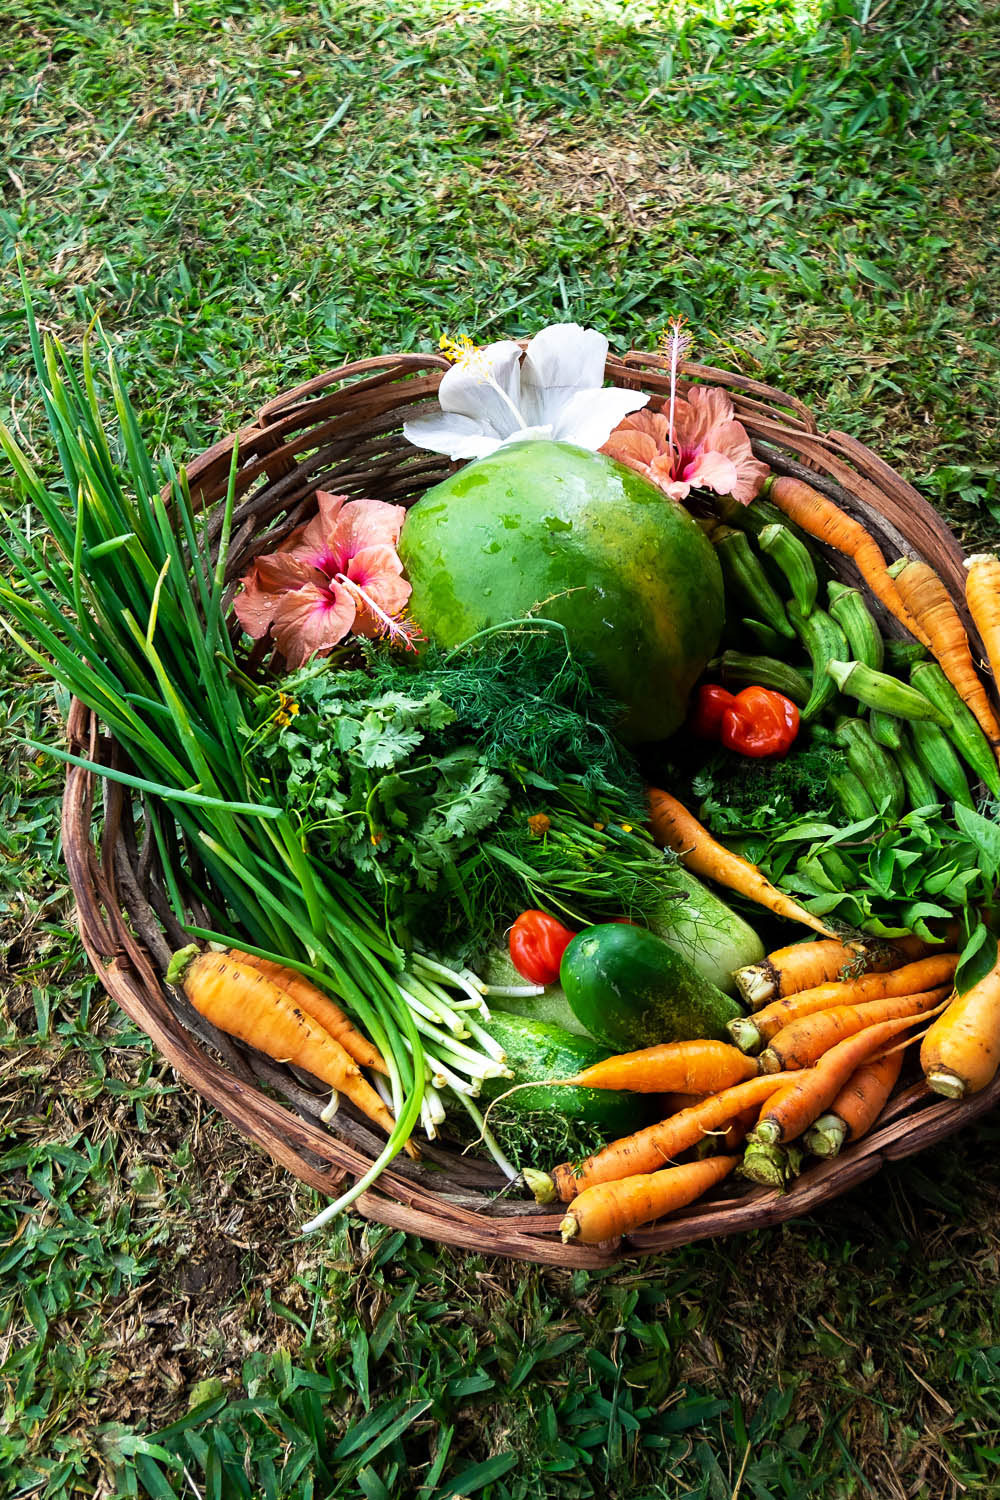 Locally sourced produce at PEG Farm | A 5-Day Itinerary of What to See and Eat around Barbados